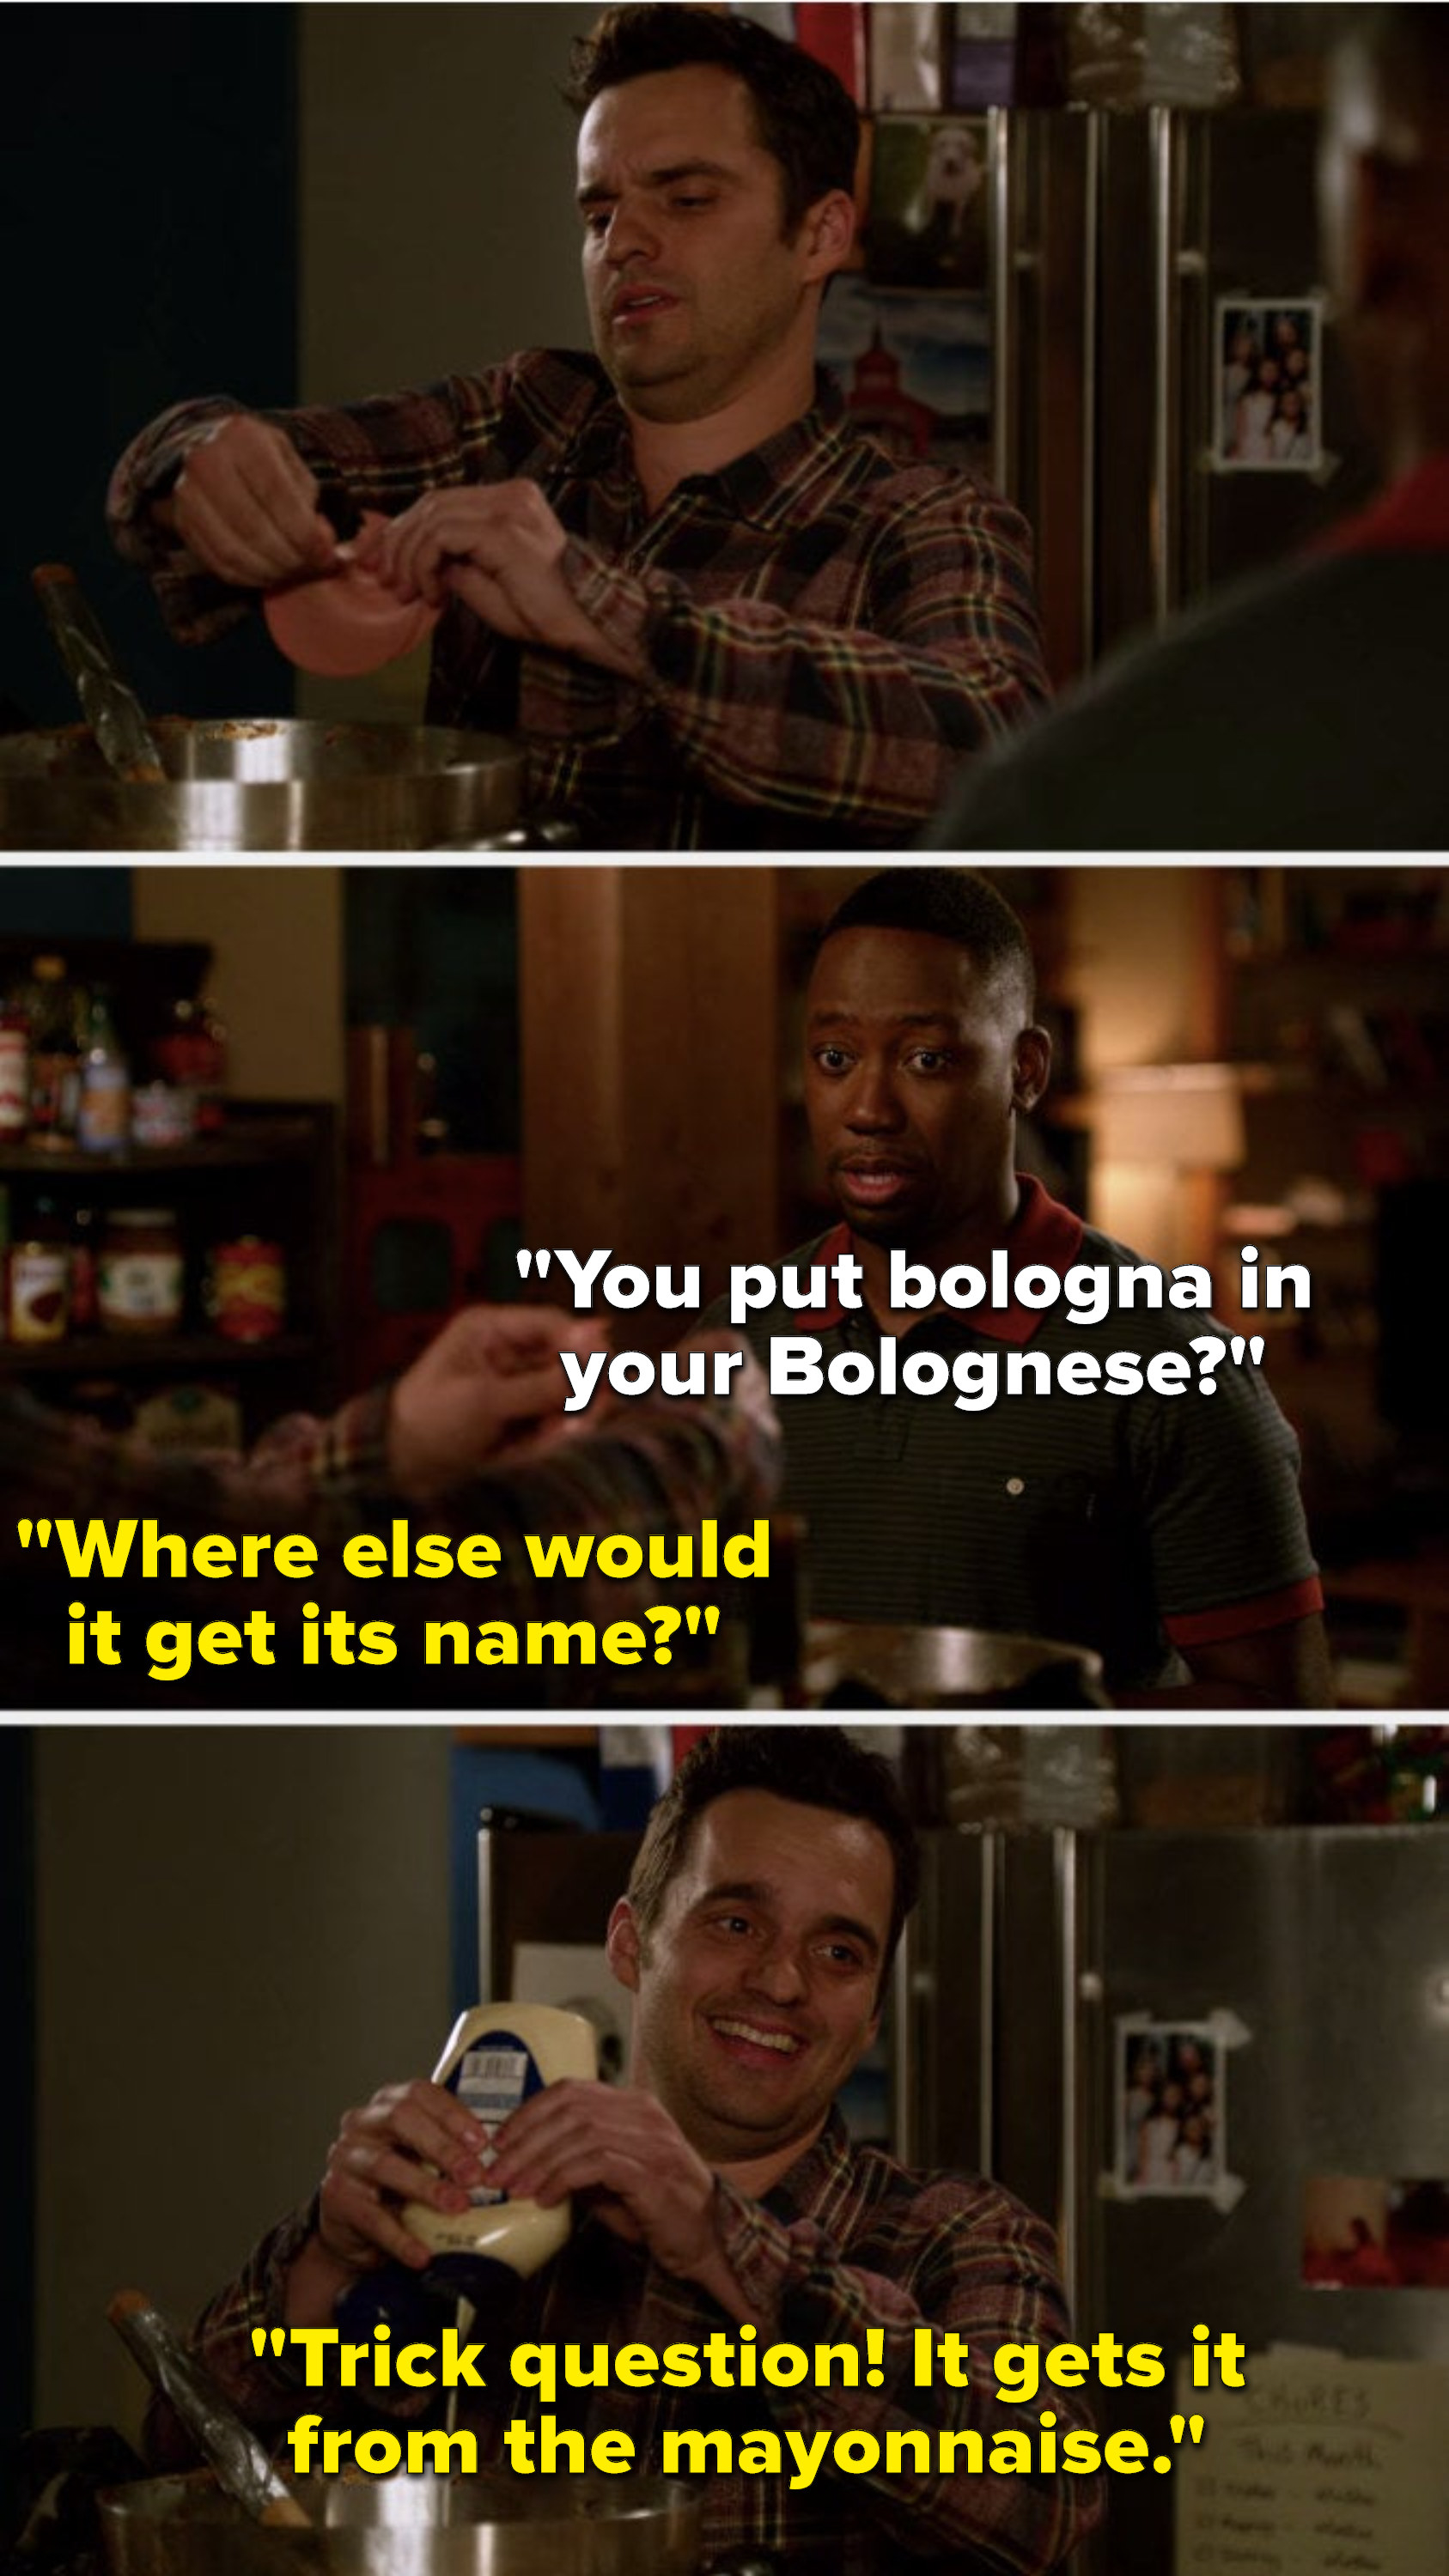 Winston asks, You put bologna in your Bolognese, and Nick says, Where else would it get its name, trick question, it gets it from the mayonnaise